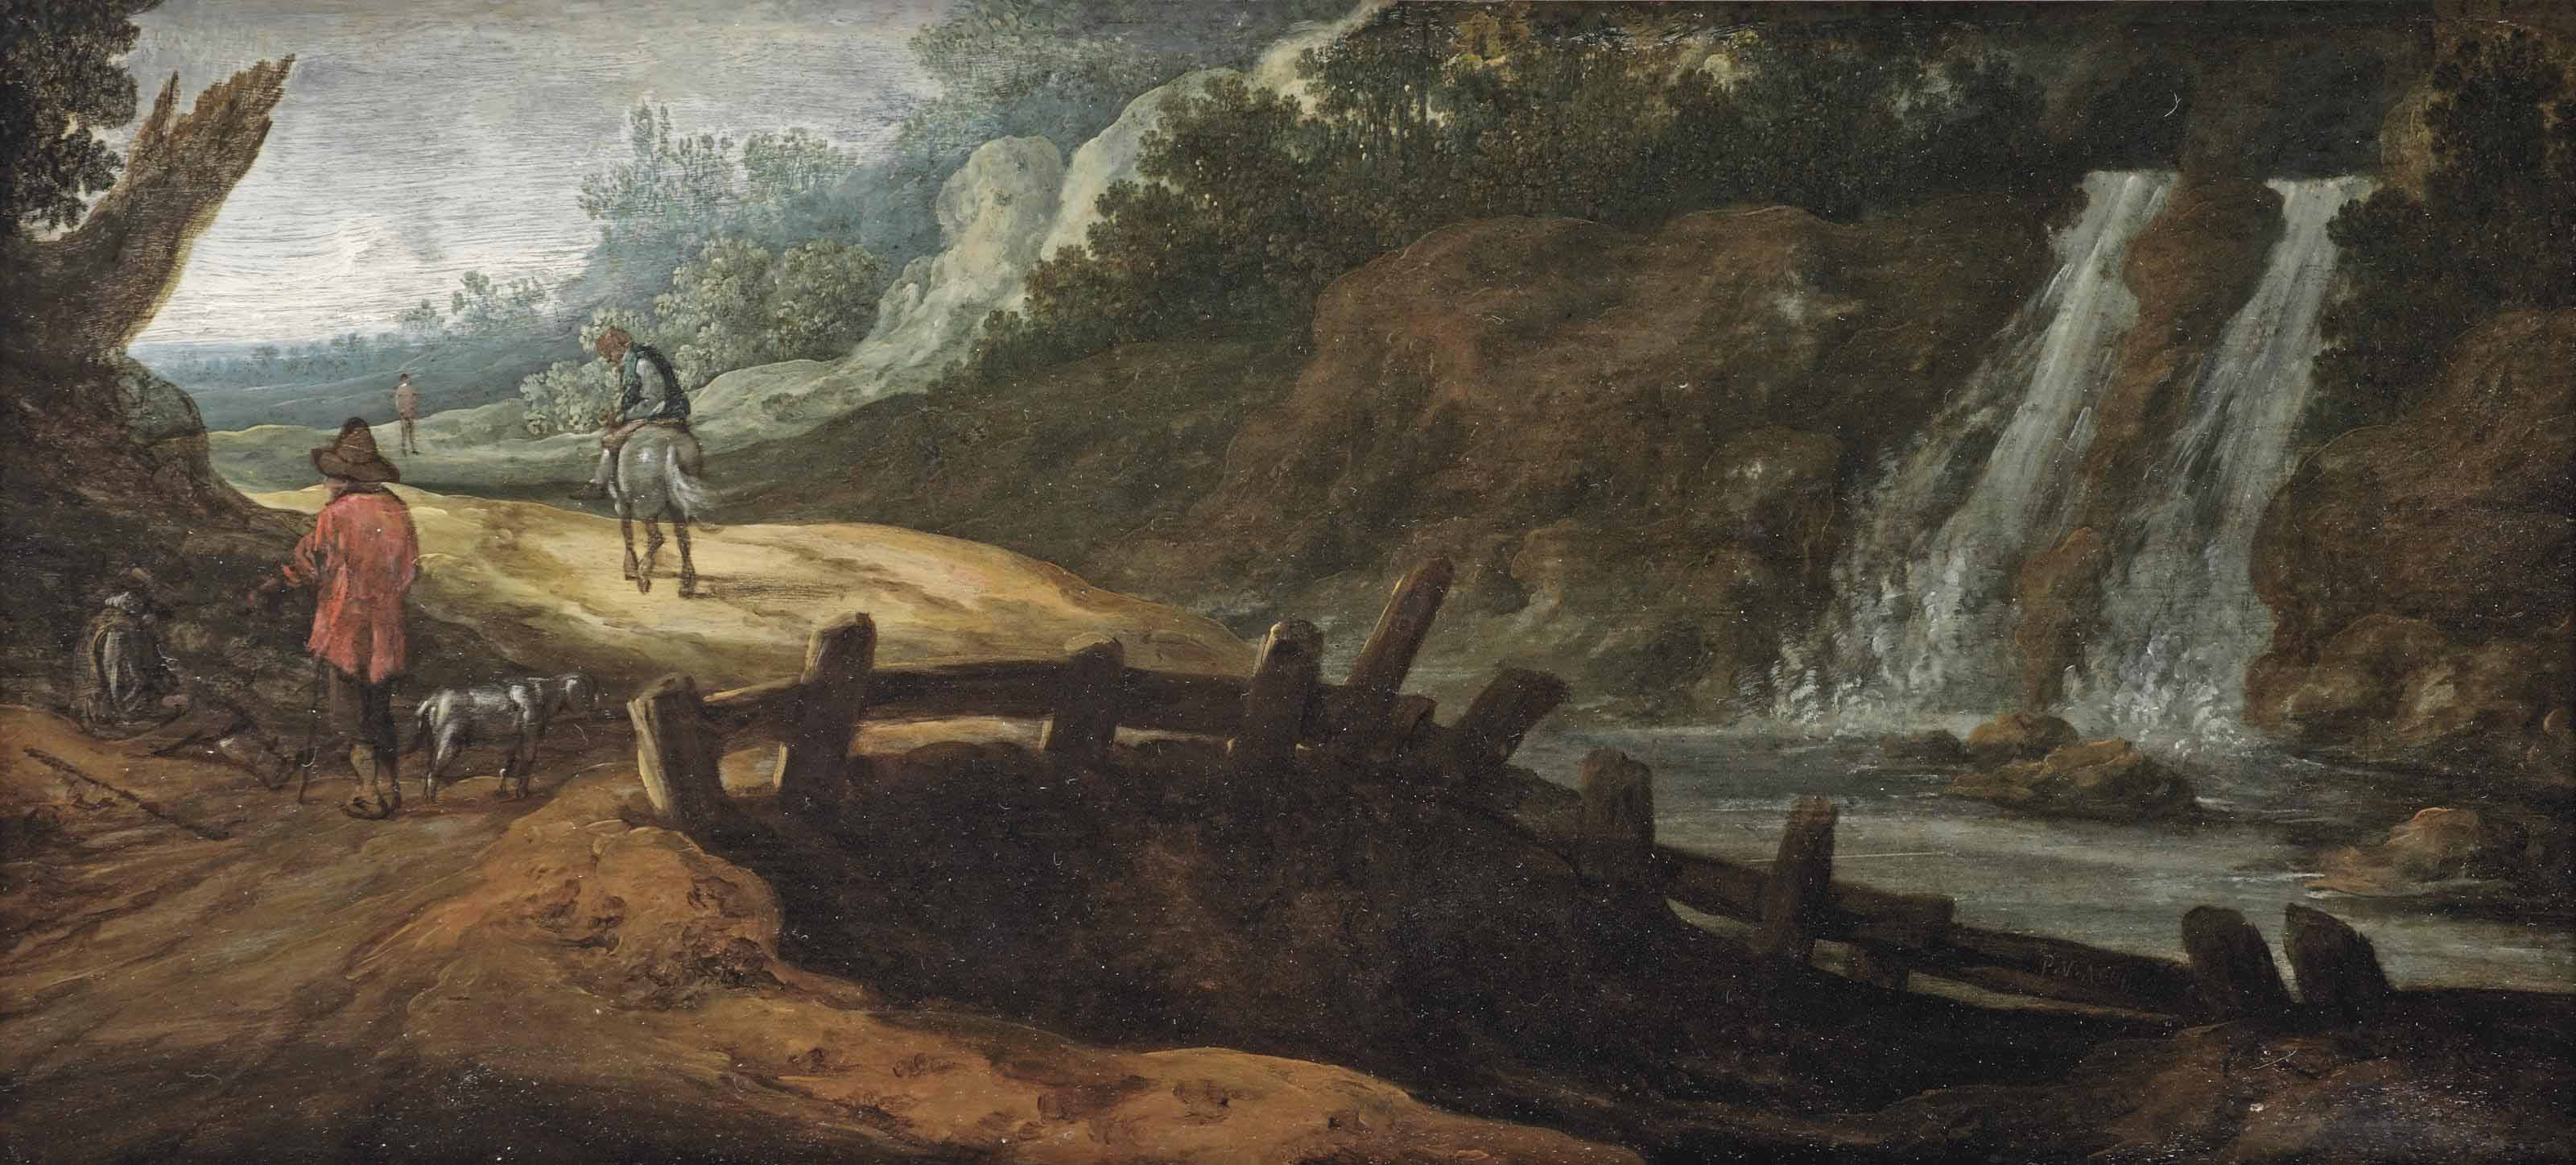 A rocky landscape with figures on a path, a waterfall to the right